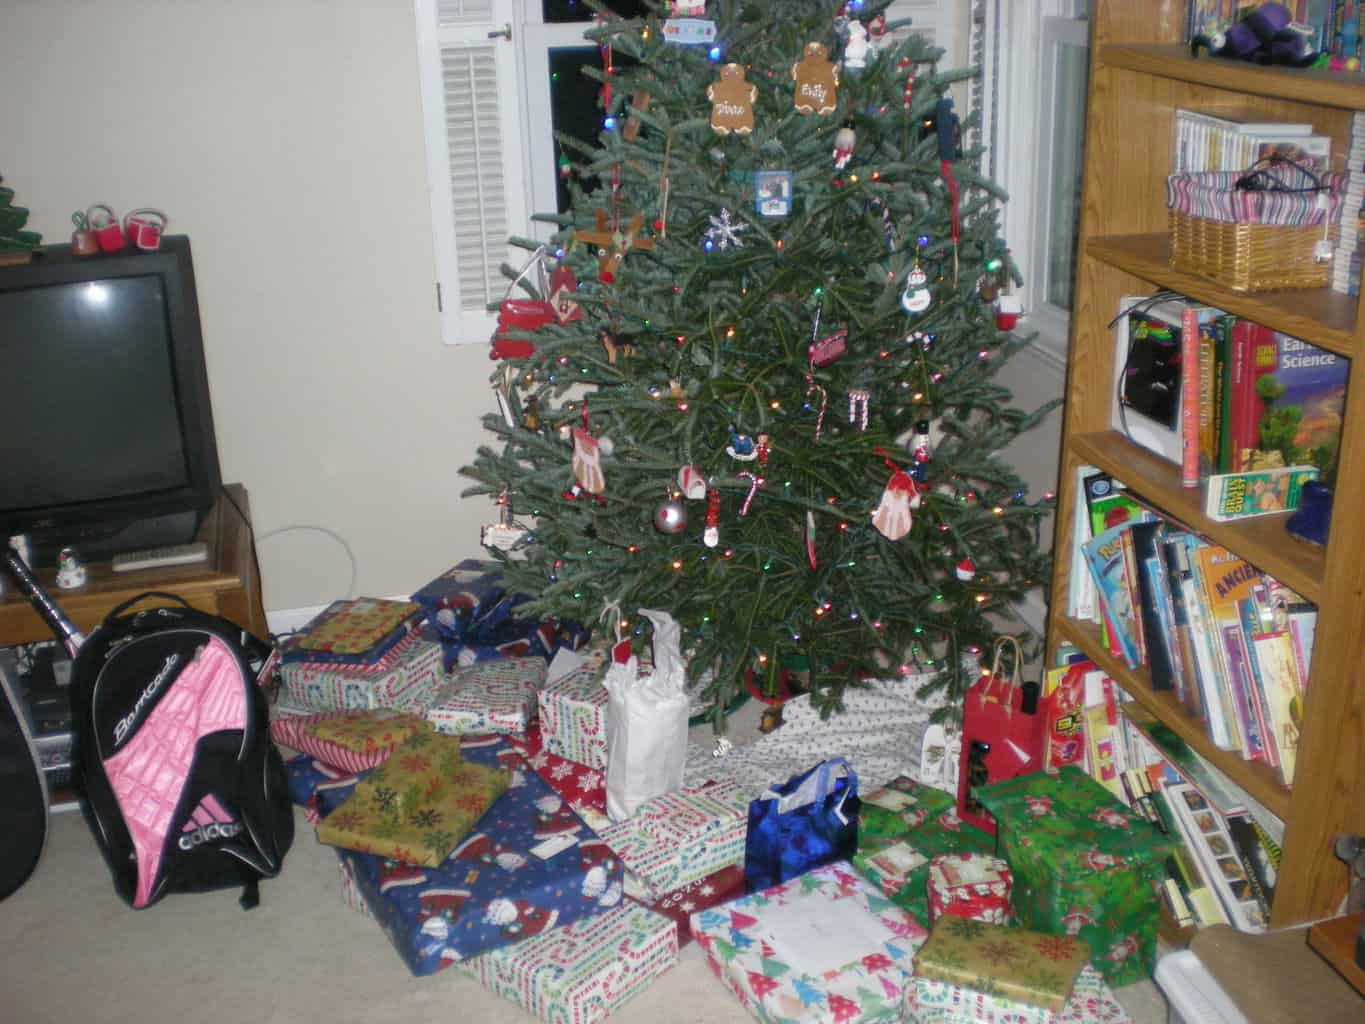 The Many Faces of Christmas - Suburbia Unwrapped